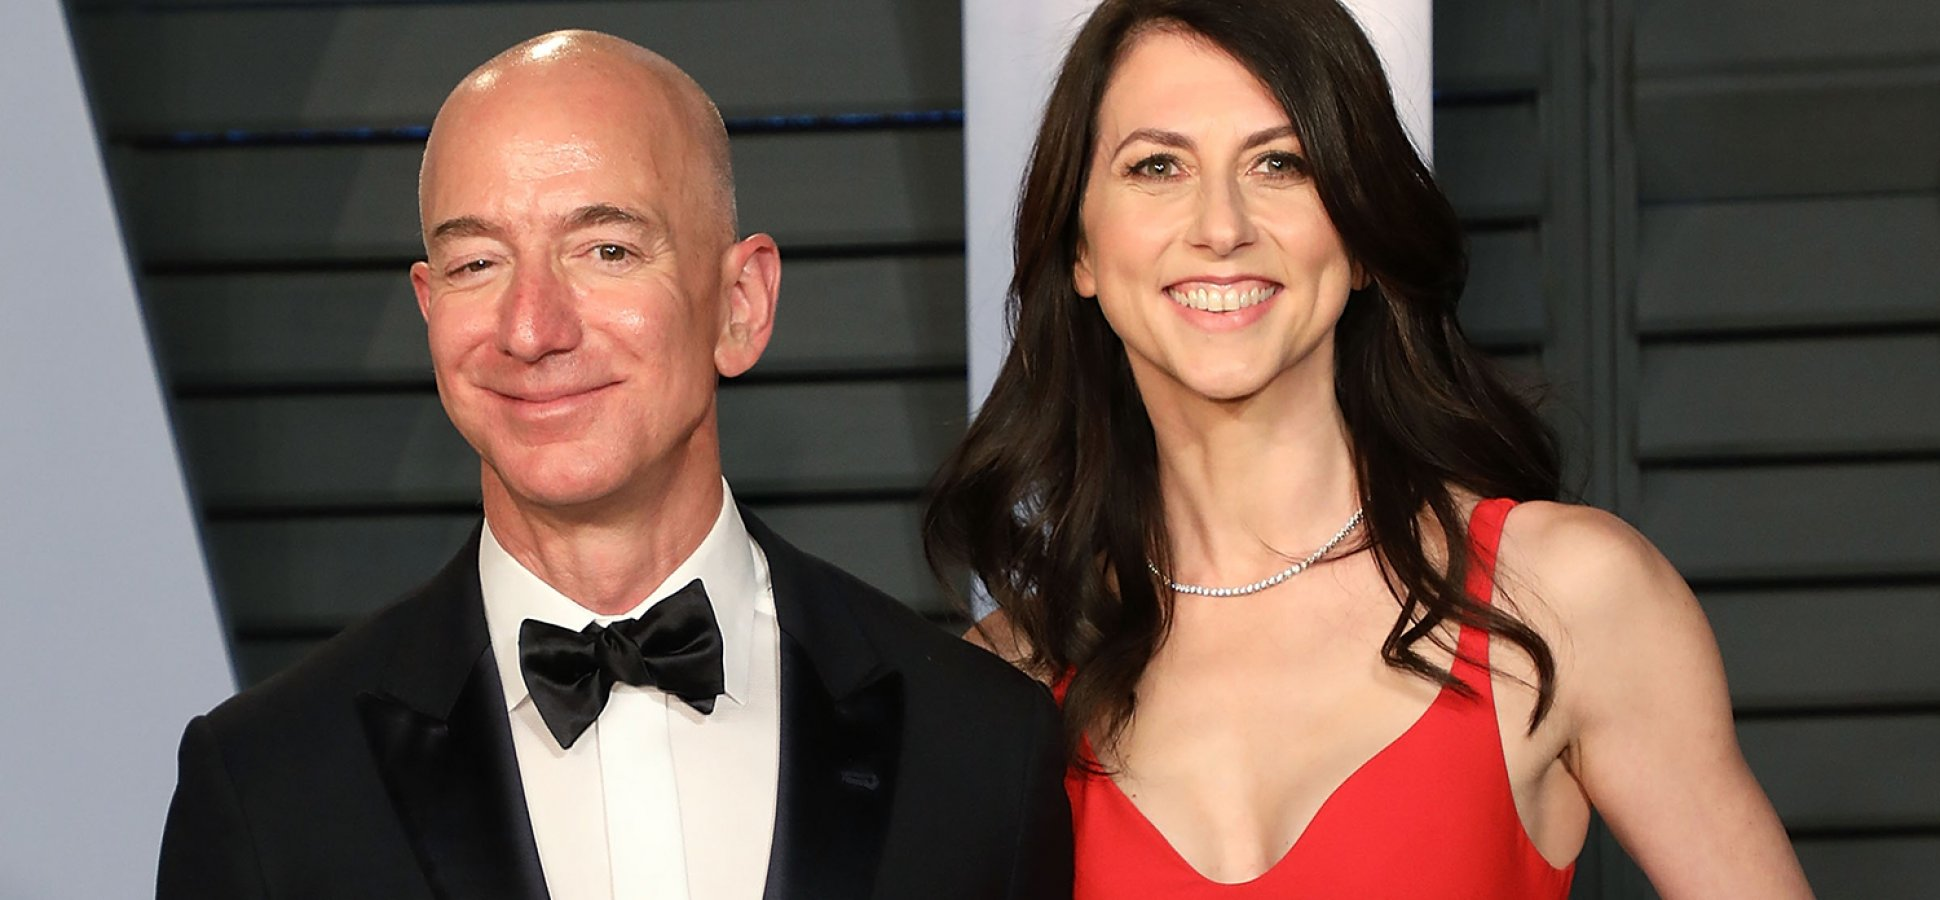 Jeff Bezos Won't Be the World's Wealthiest Person for Long Unless He Solves This 1 Big Problem